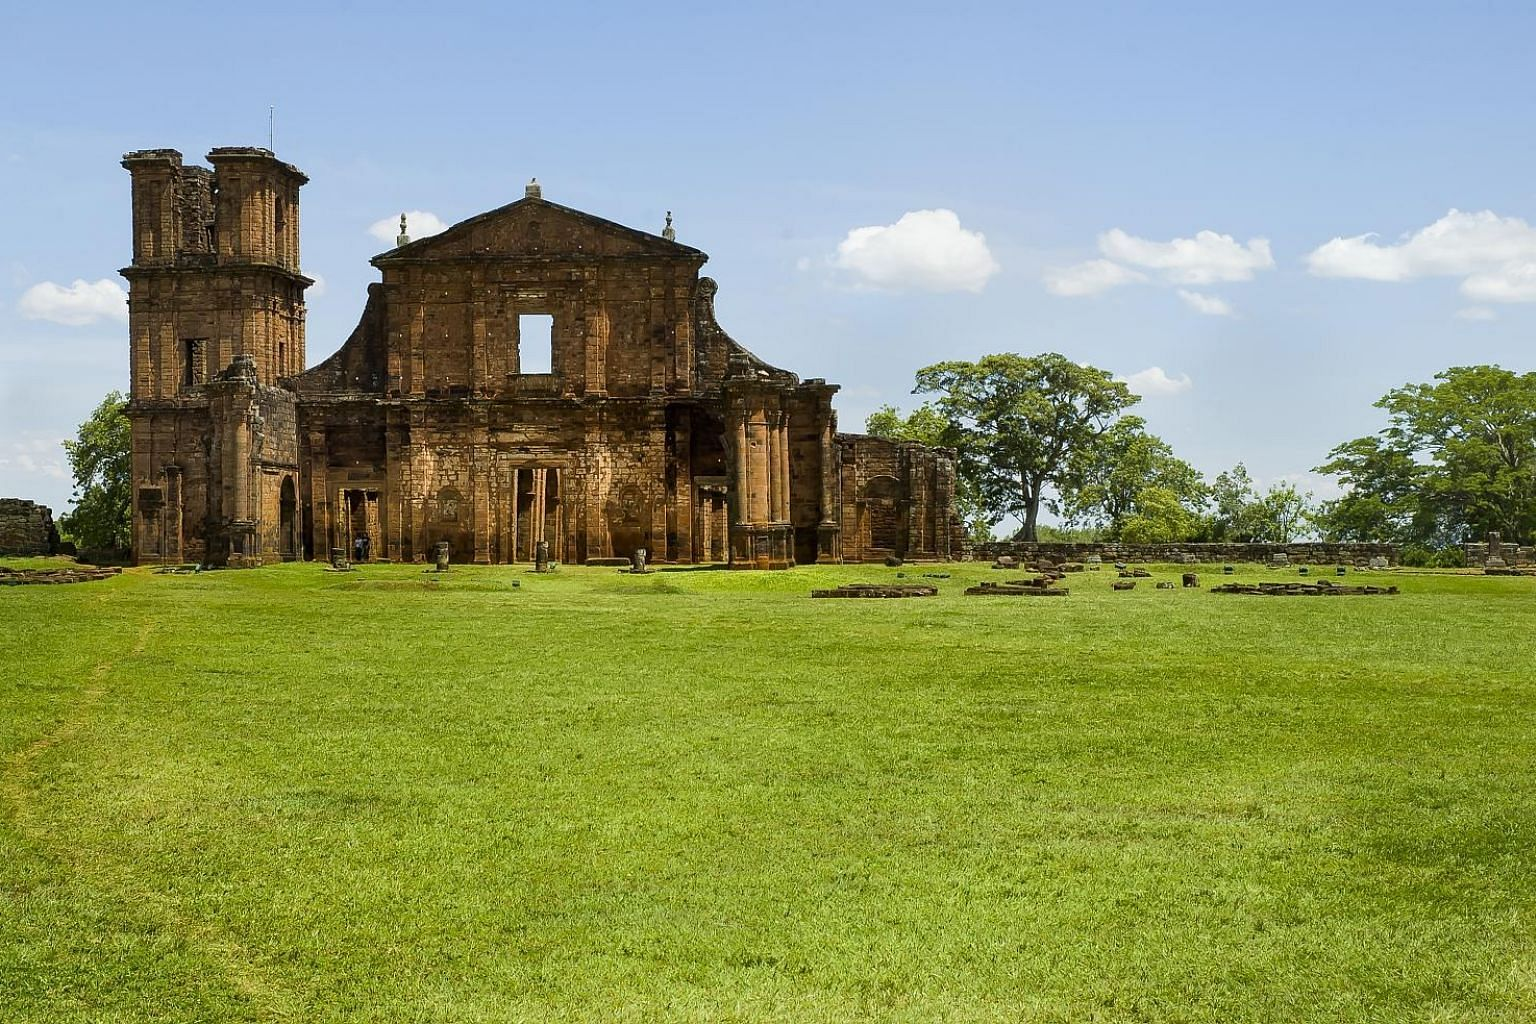 The ruins of Sao Miguel, one of the many Jesuit Missions in the south of Brazil.